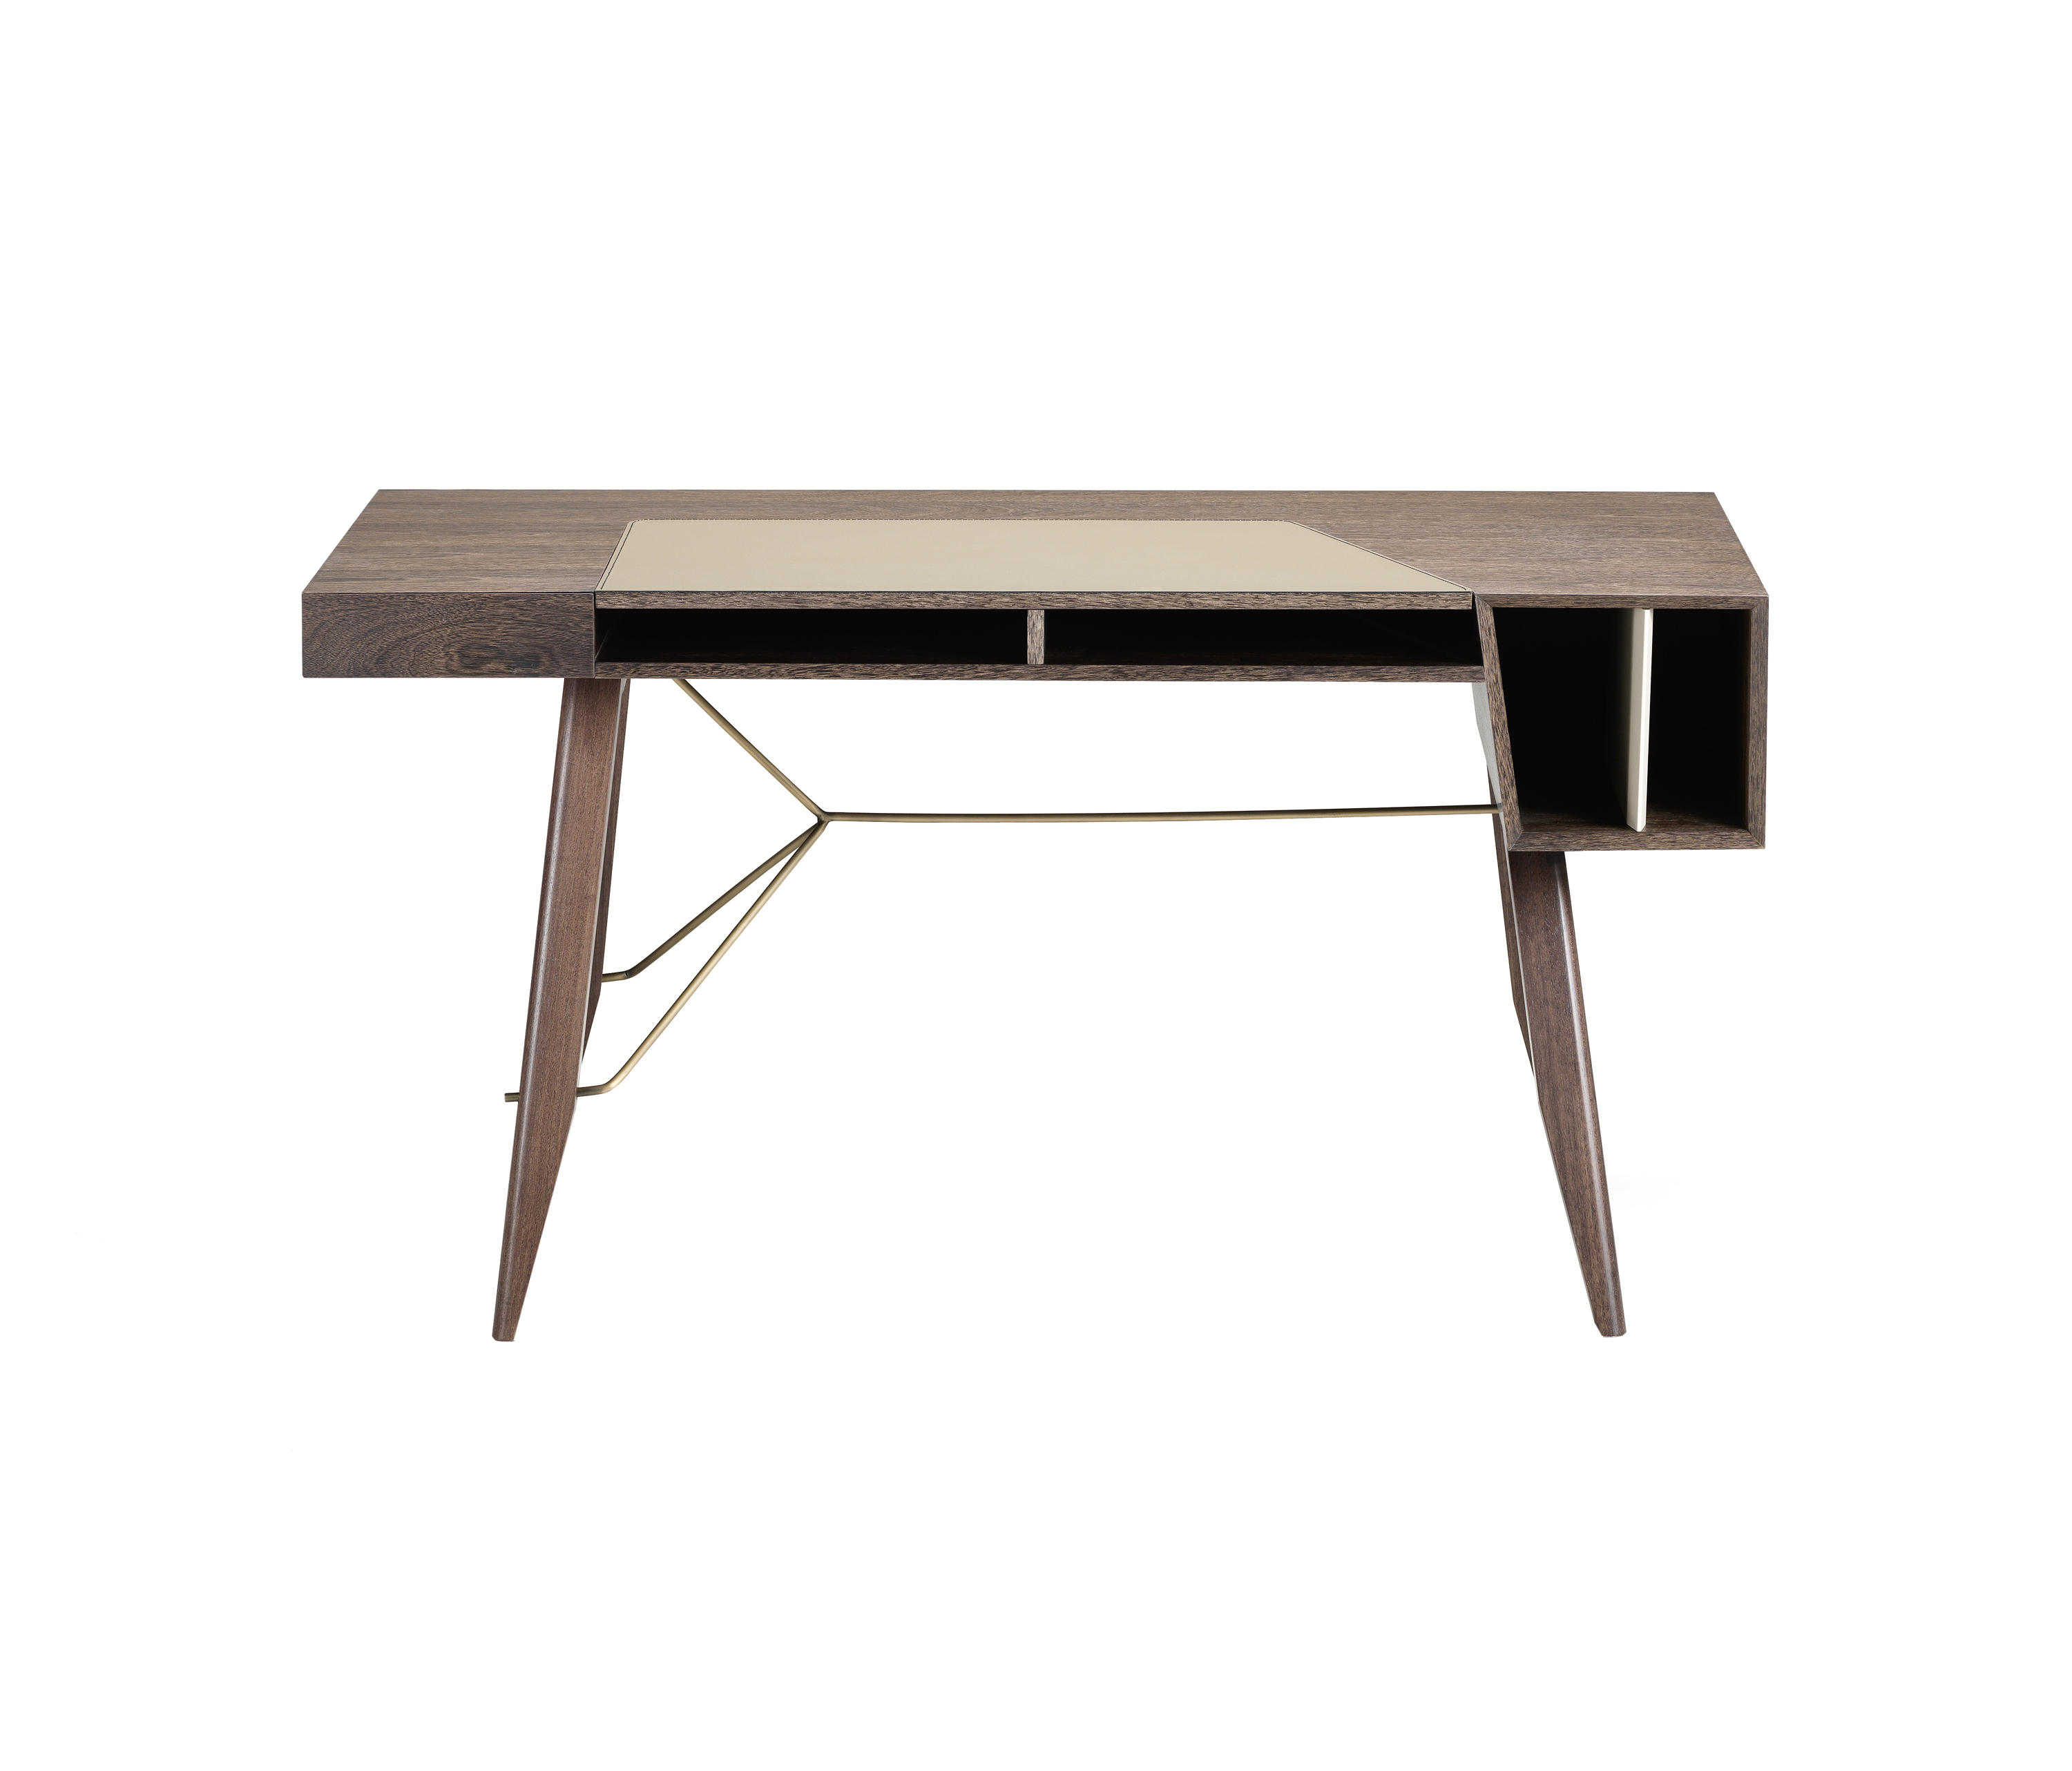 Rio Novo Desk Desks From Rubelli Architonic # Muebles Novo Stylo